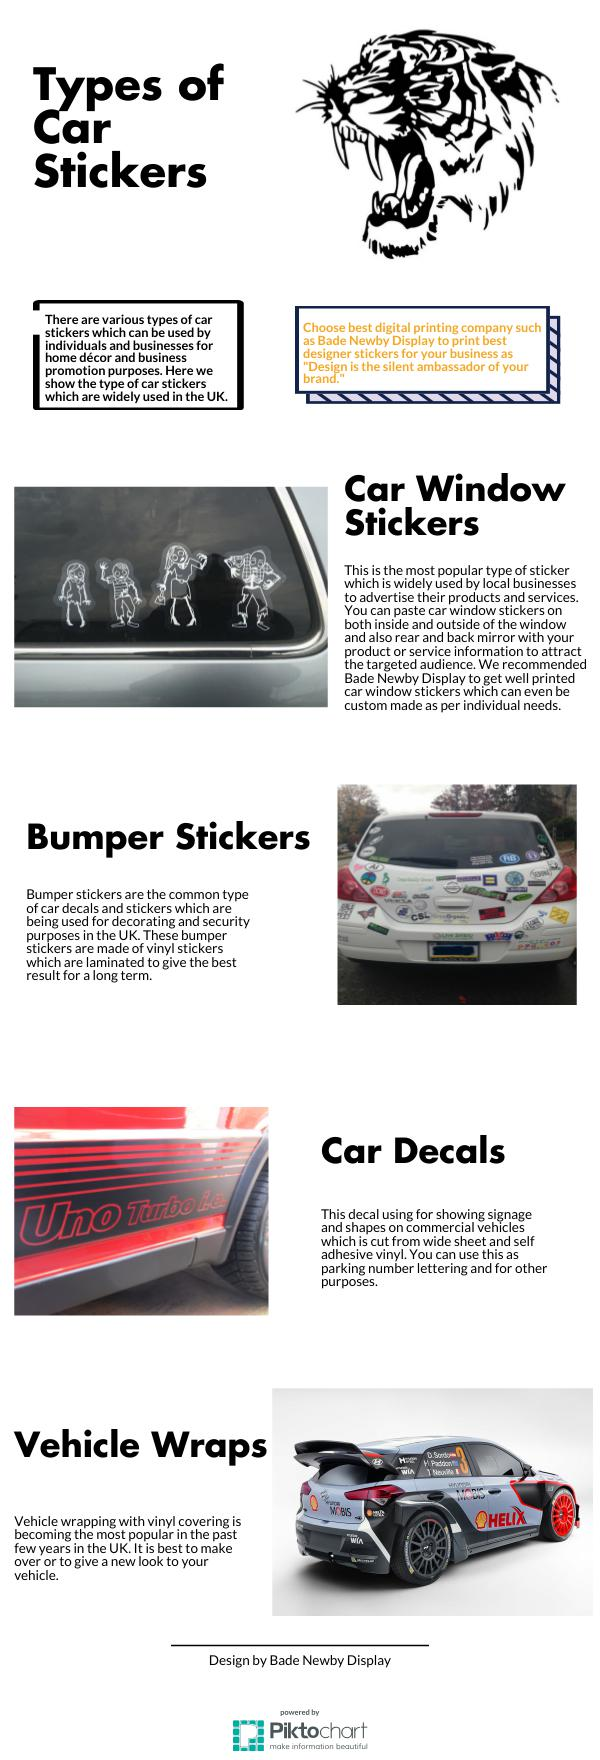 Types Of Car Stickers Bumper Car Window And Vehicle Wraps - Car window decals for business uk